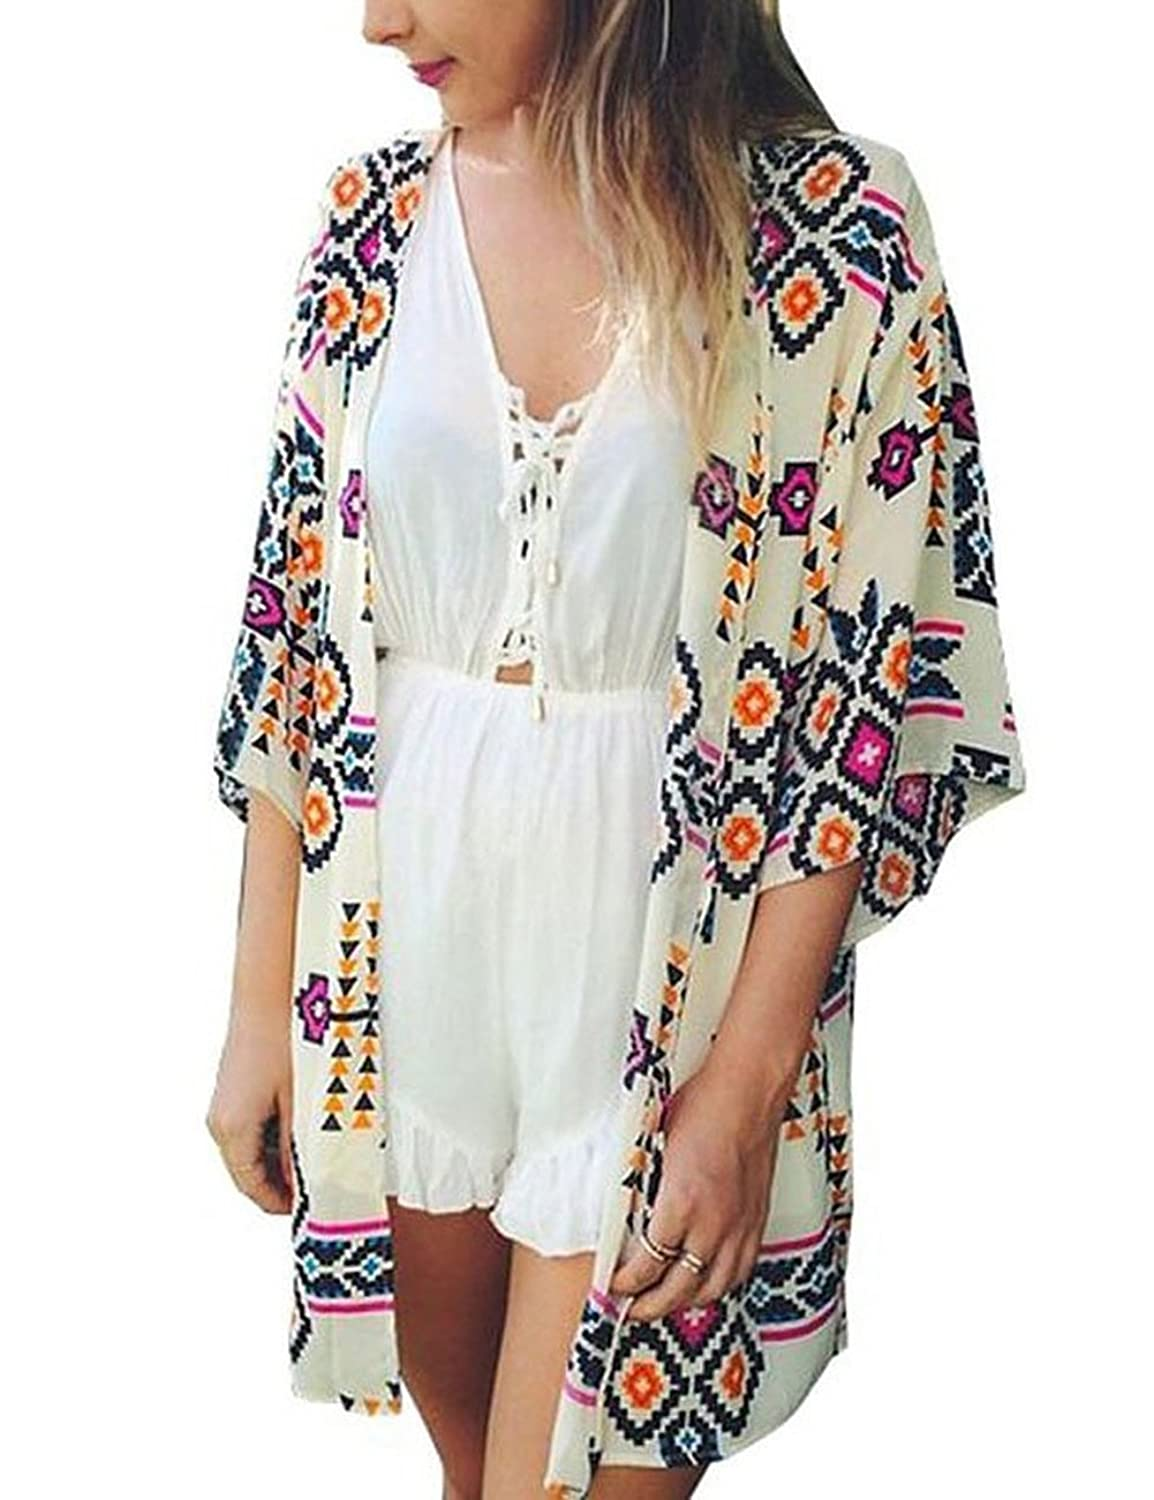 Mode Damen drucken Kimono Cardigan Bluse Tops Strandkleid Bikini Cover Up